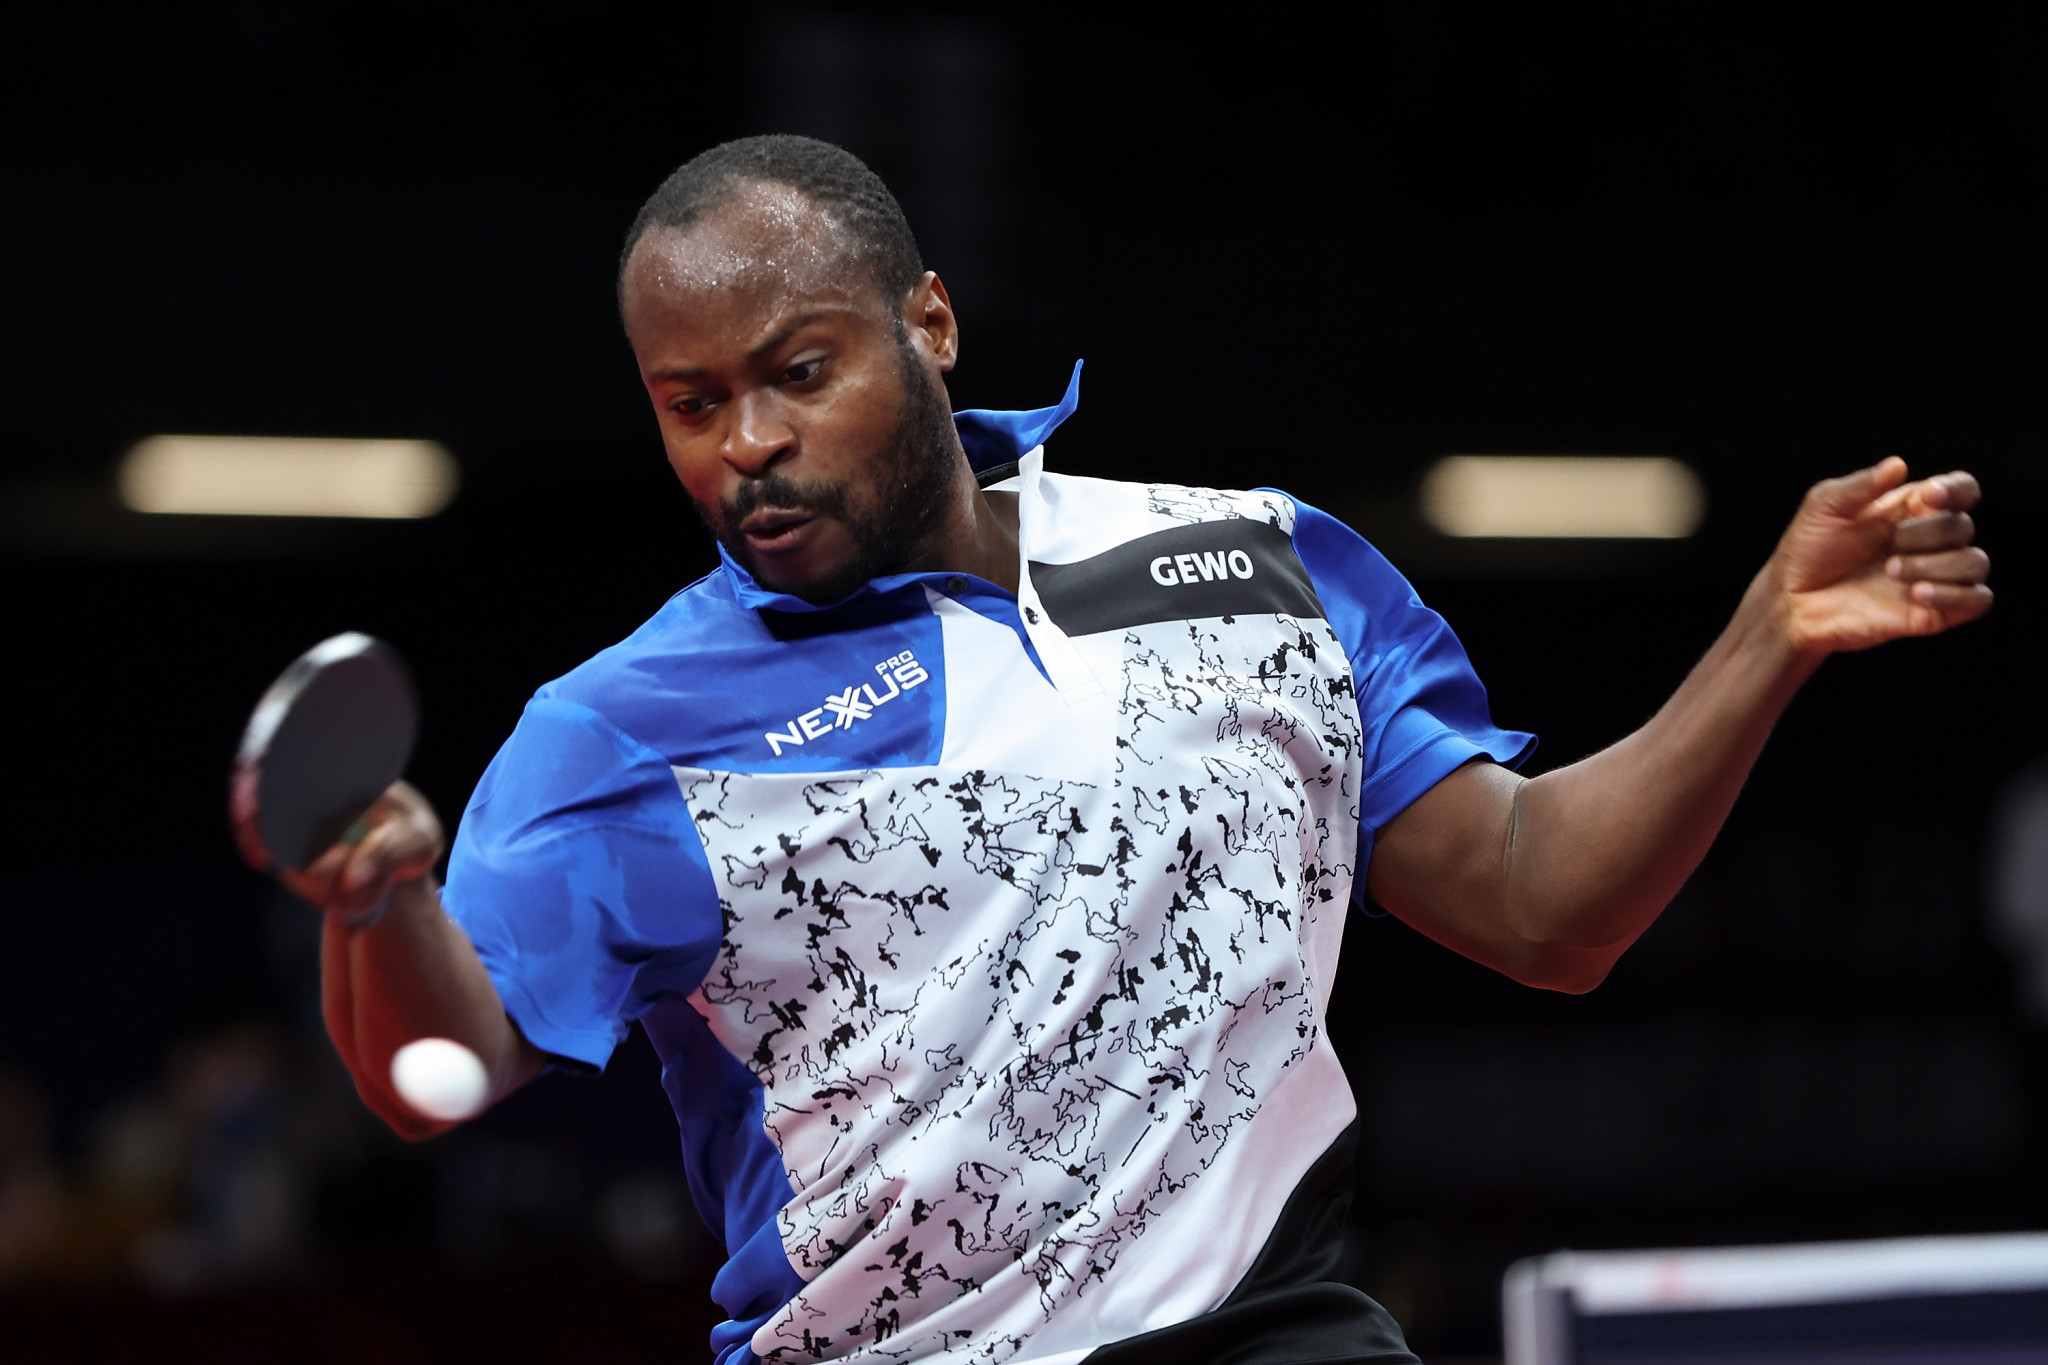 Nigeria and Egypt tipped for success at 2021 ITTF African Table Tennis Championships